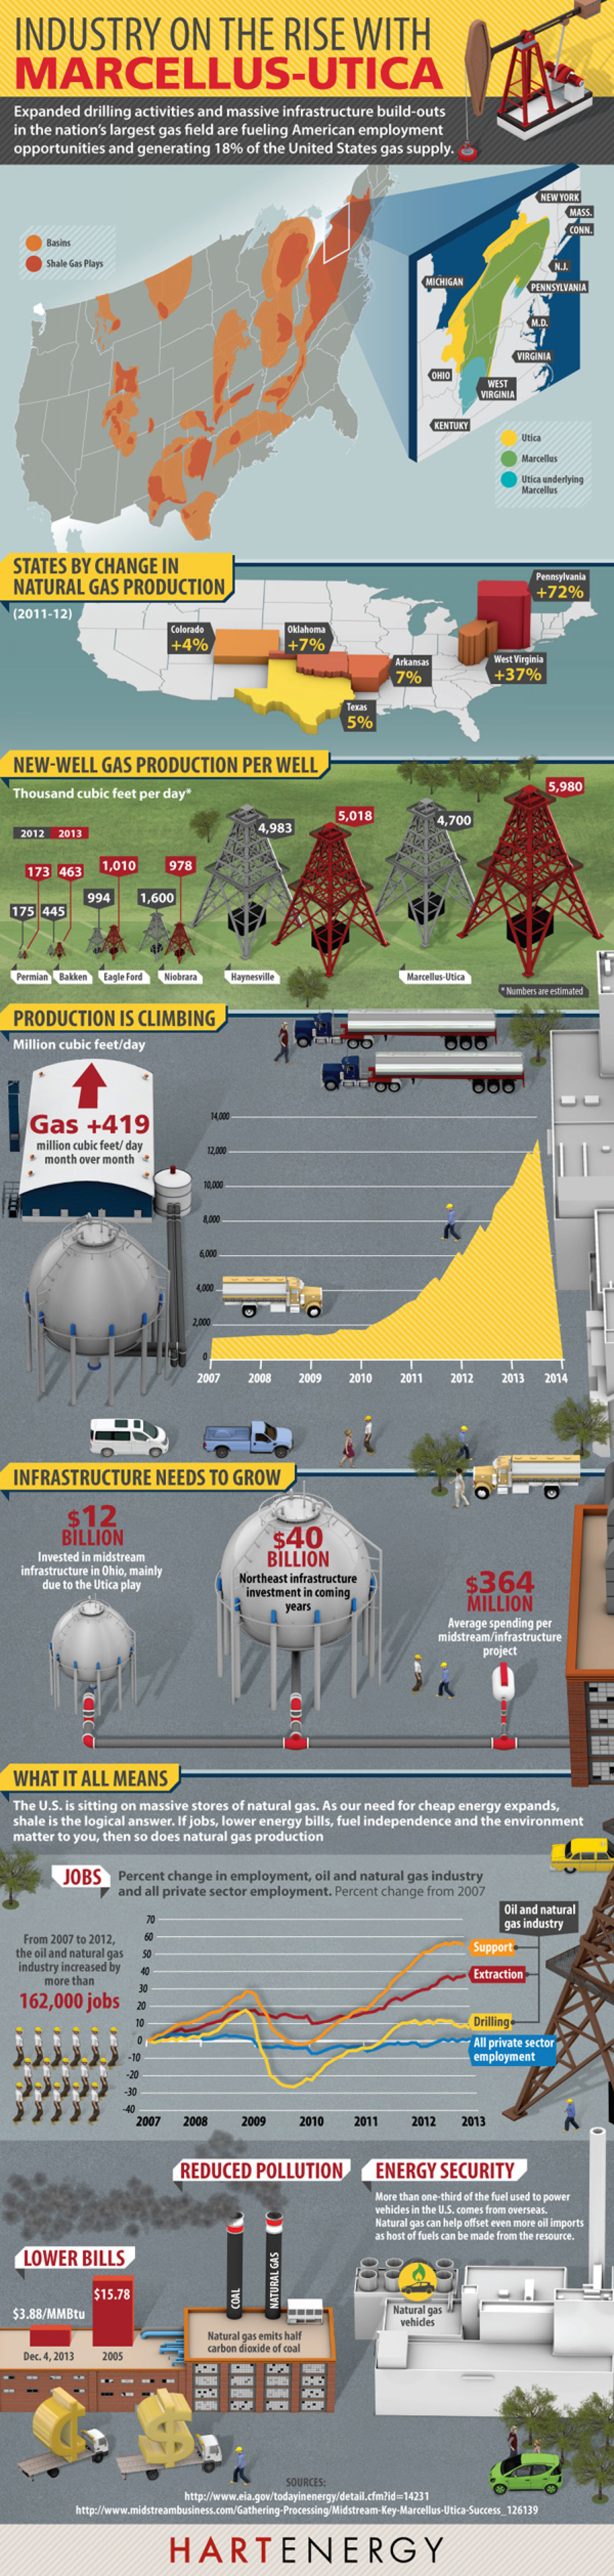 Industry on the Rise with Marcellus-Utica Infographic